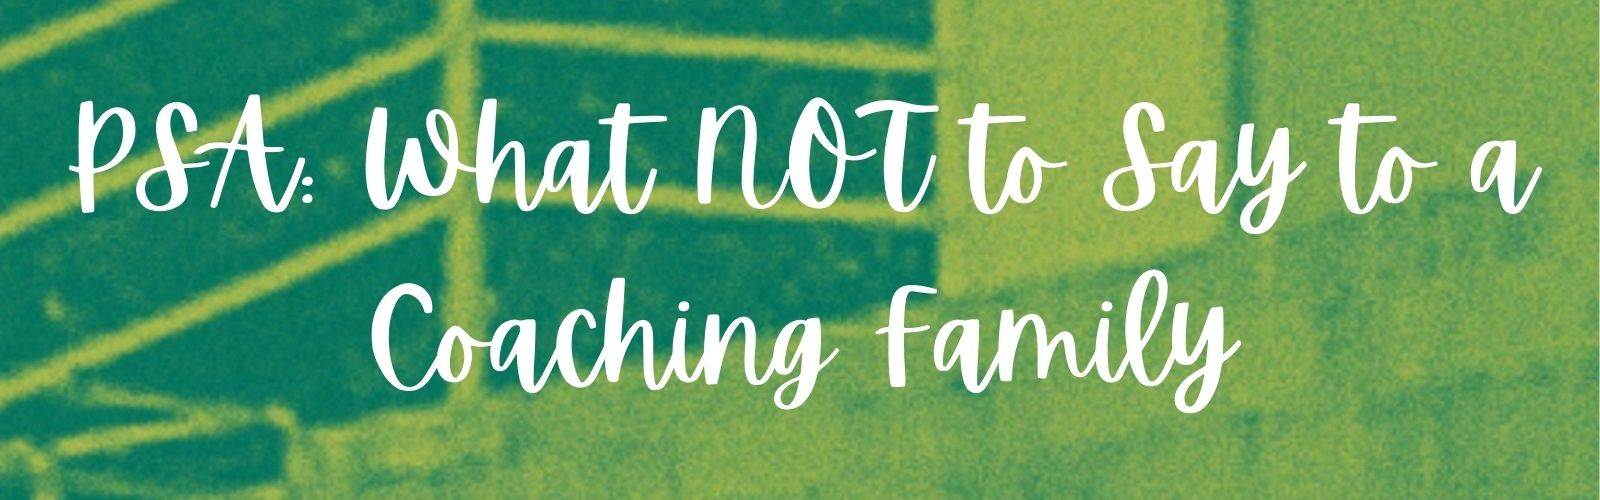 PSA: What NOT to Say to a Coaching Family